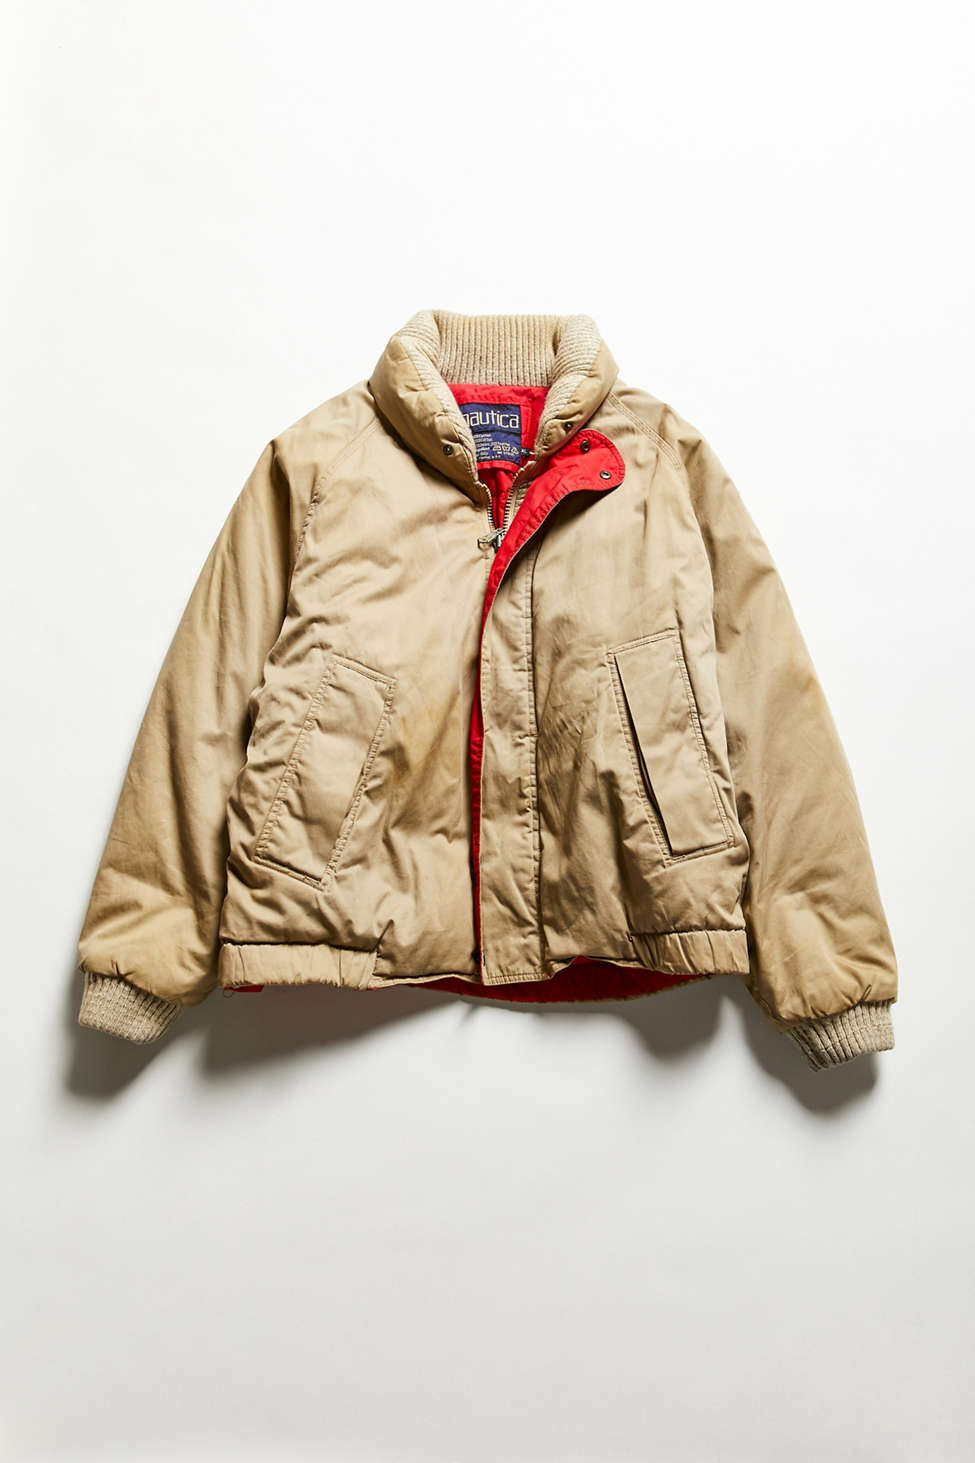 Vintage Nautica Tan Puffer Bomber Jacket Urban Outfitters Canada